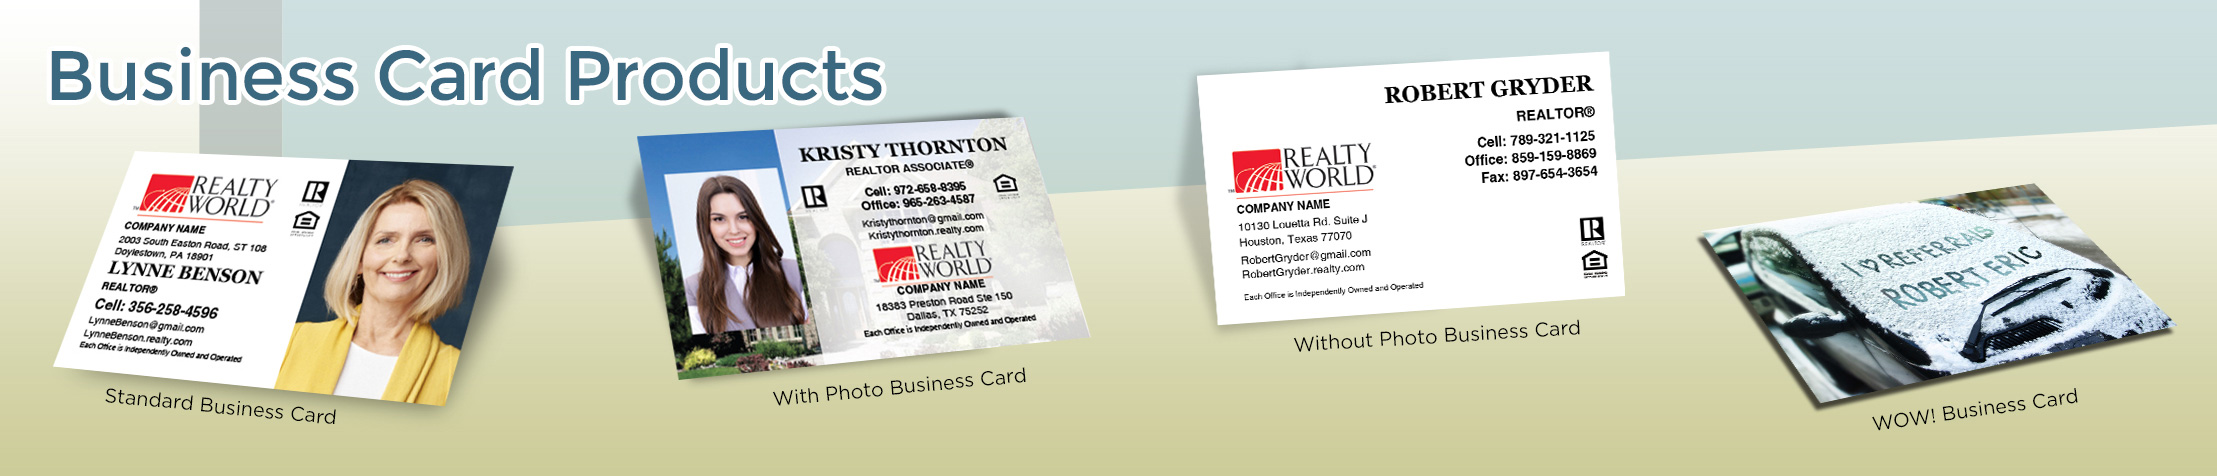 Realty World Real Estate Business Card Products - Realty World  - Unique, Custom Business Cards Printed on Quality Stock with Creative Designs for Realtors | BestPrintBuy.com